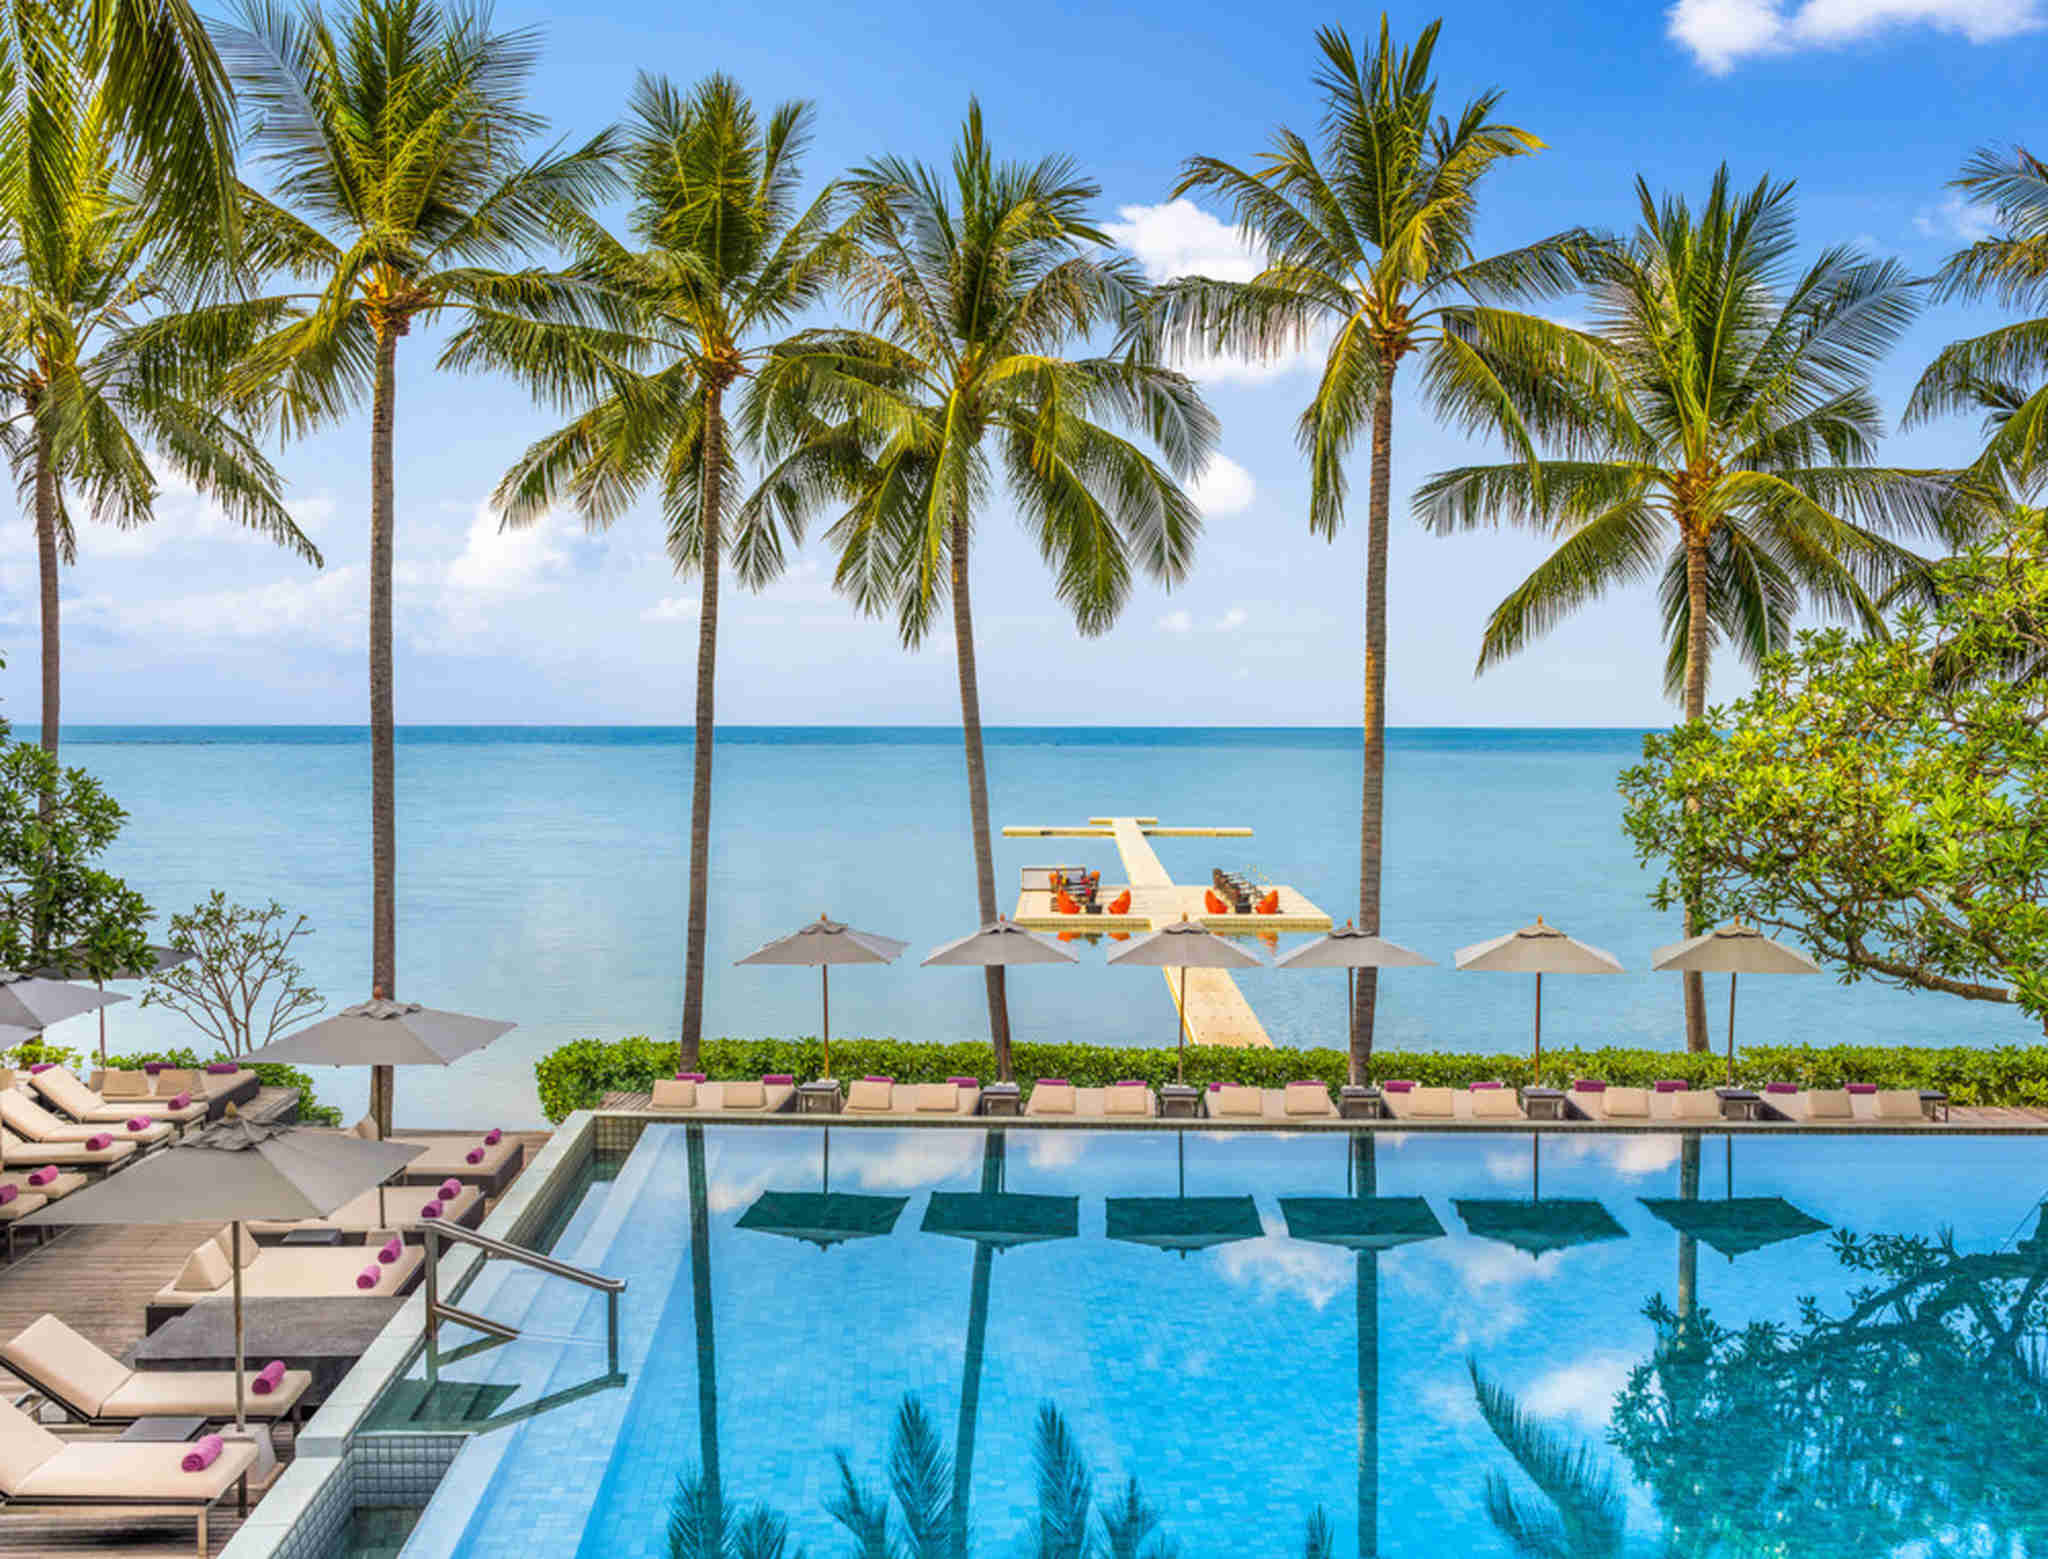 Treat yourself in one the best luxury resorts in Koh Samui!